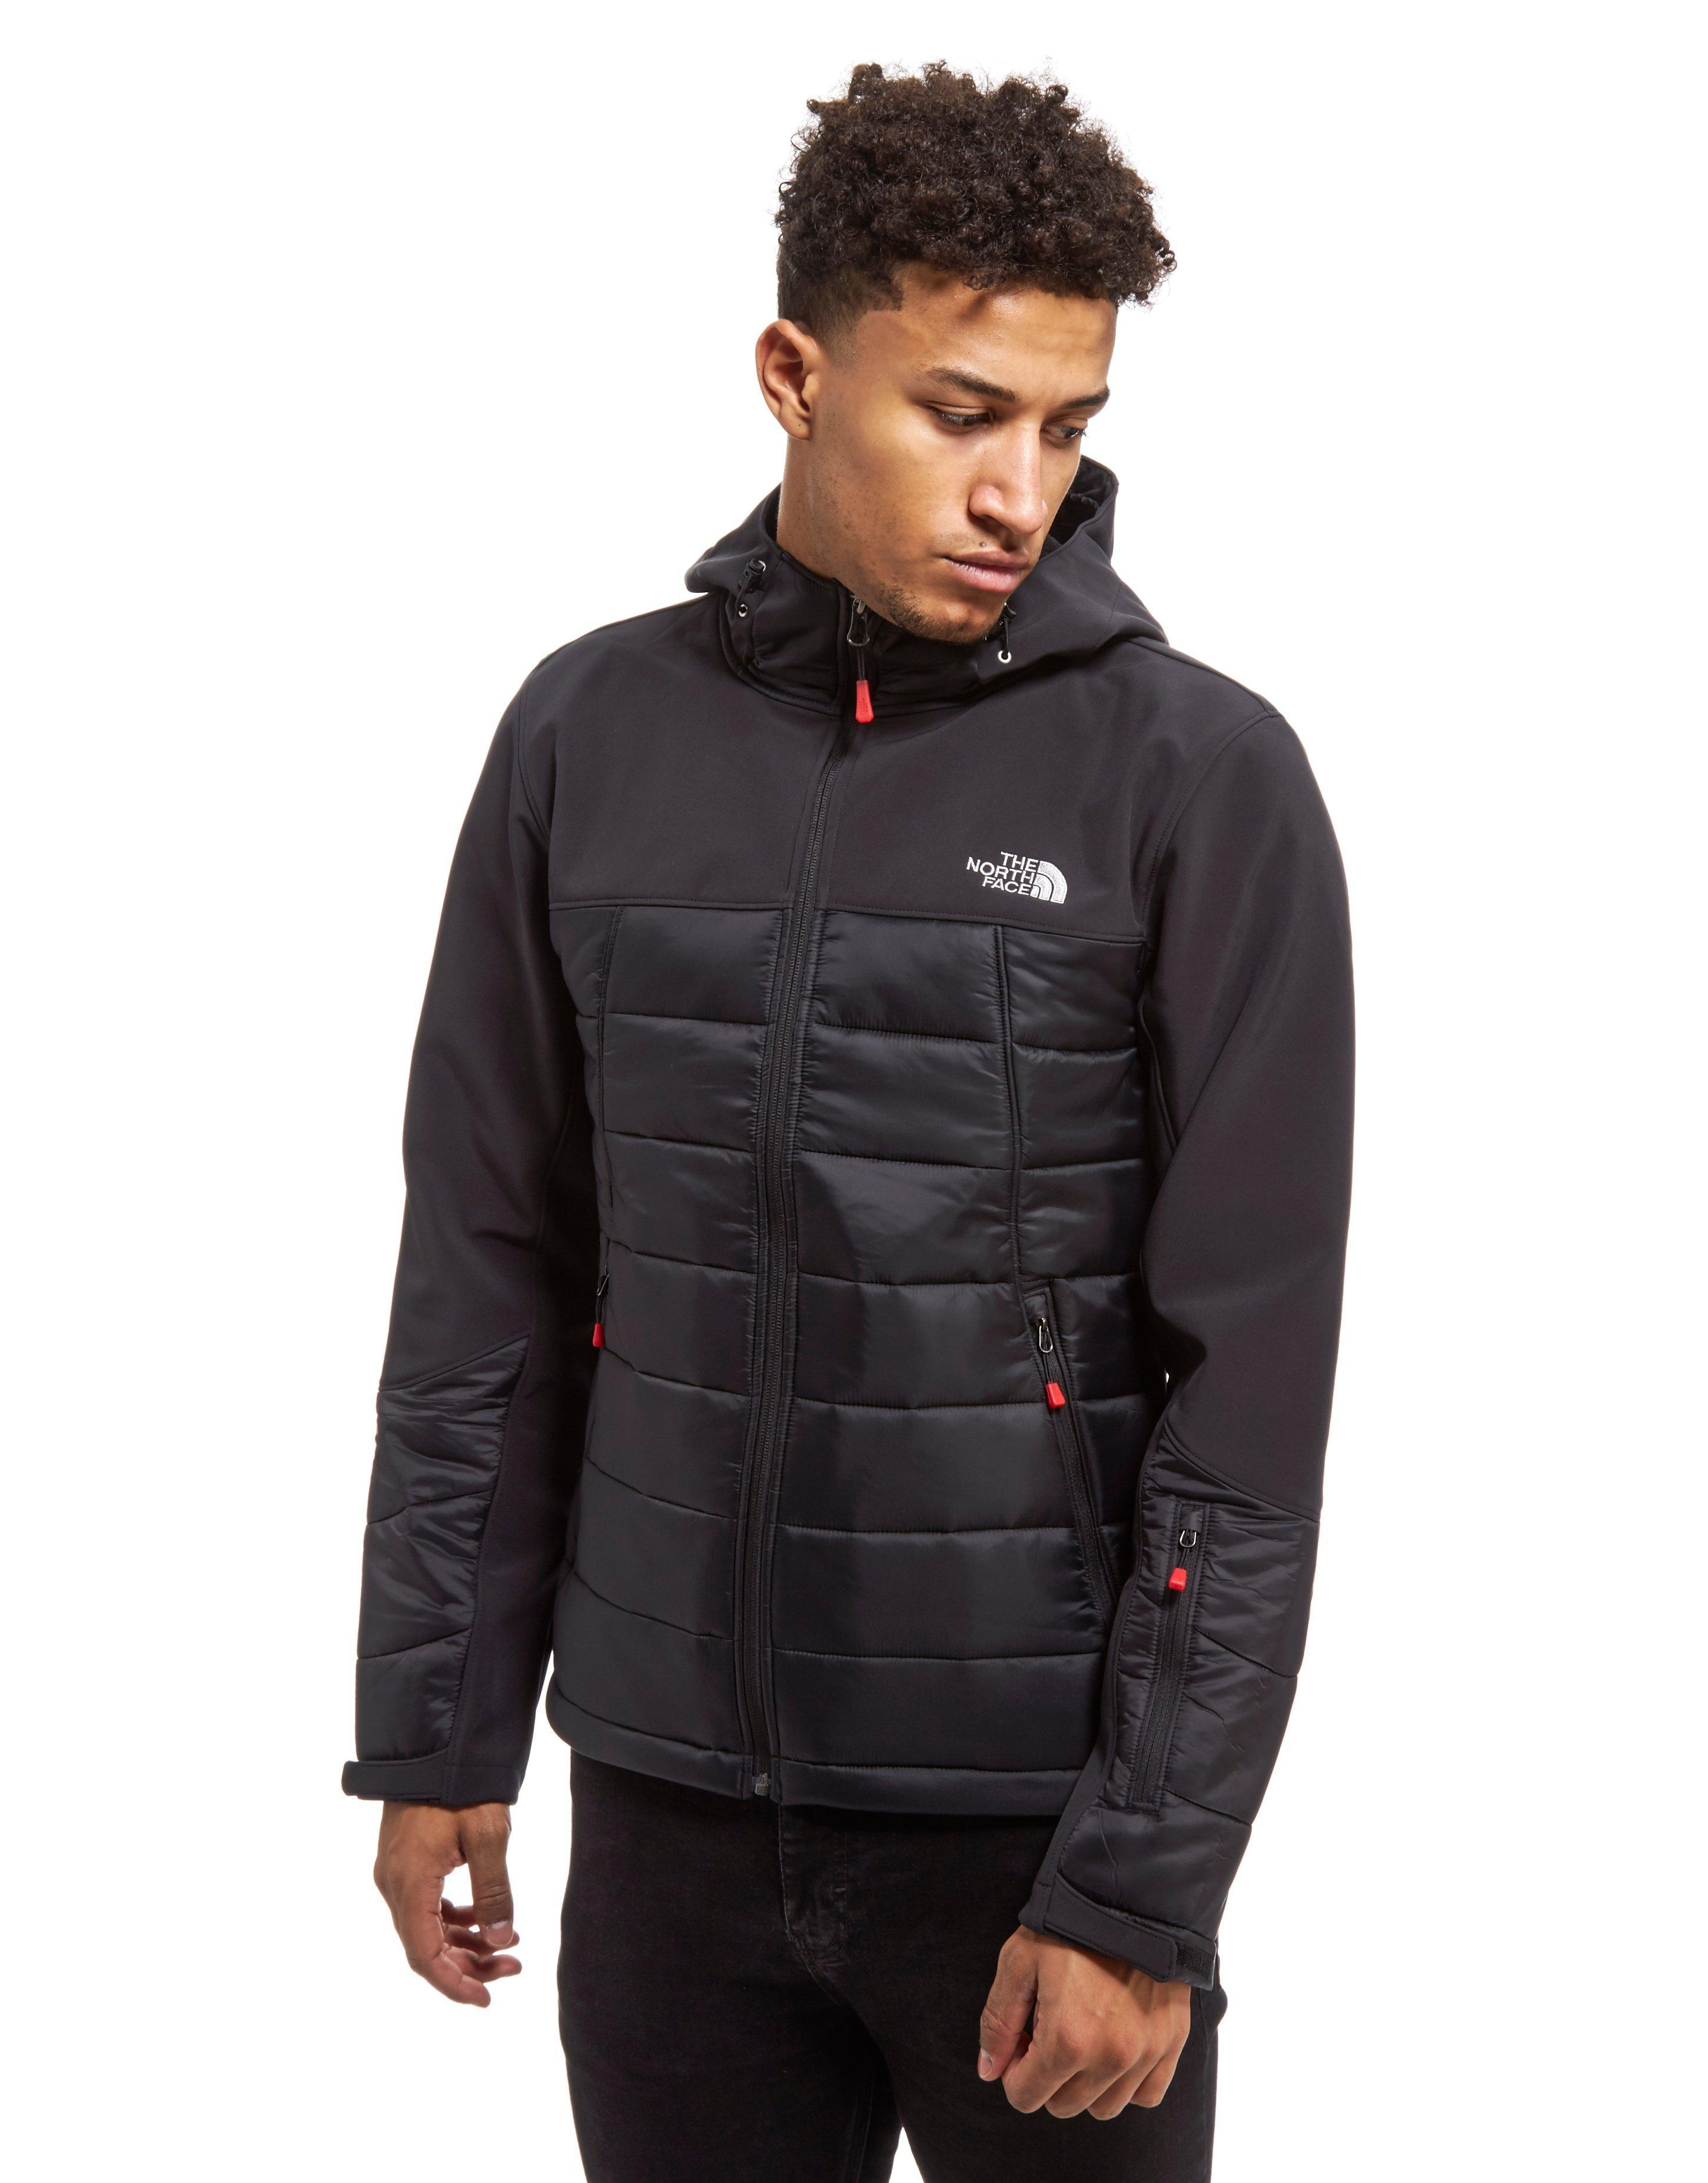 lyst the north face tompkins hybrid jacket in black for men. Black Bedroom Furniture Sets. Home Design Ideas